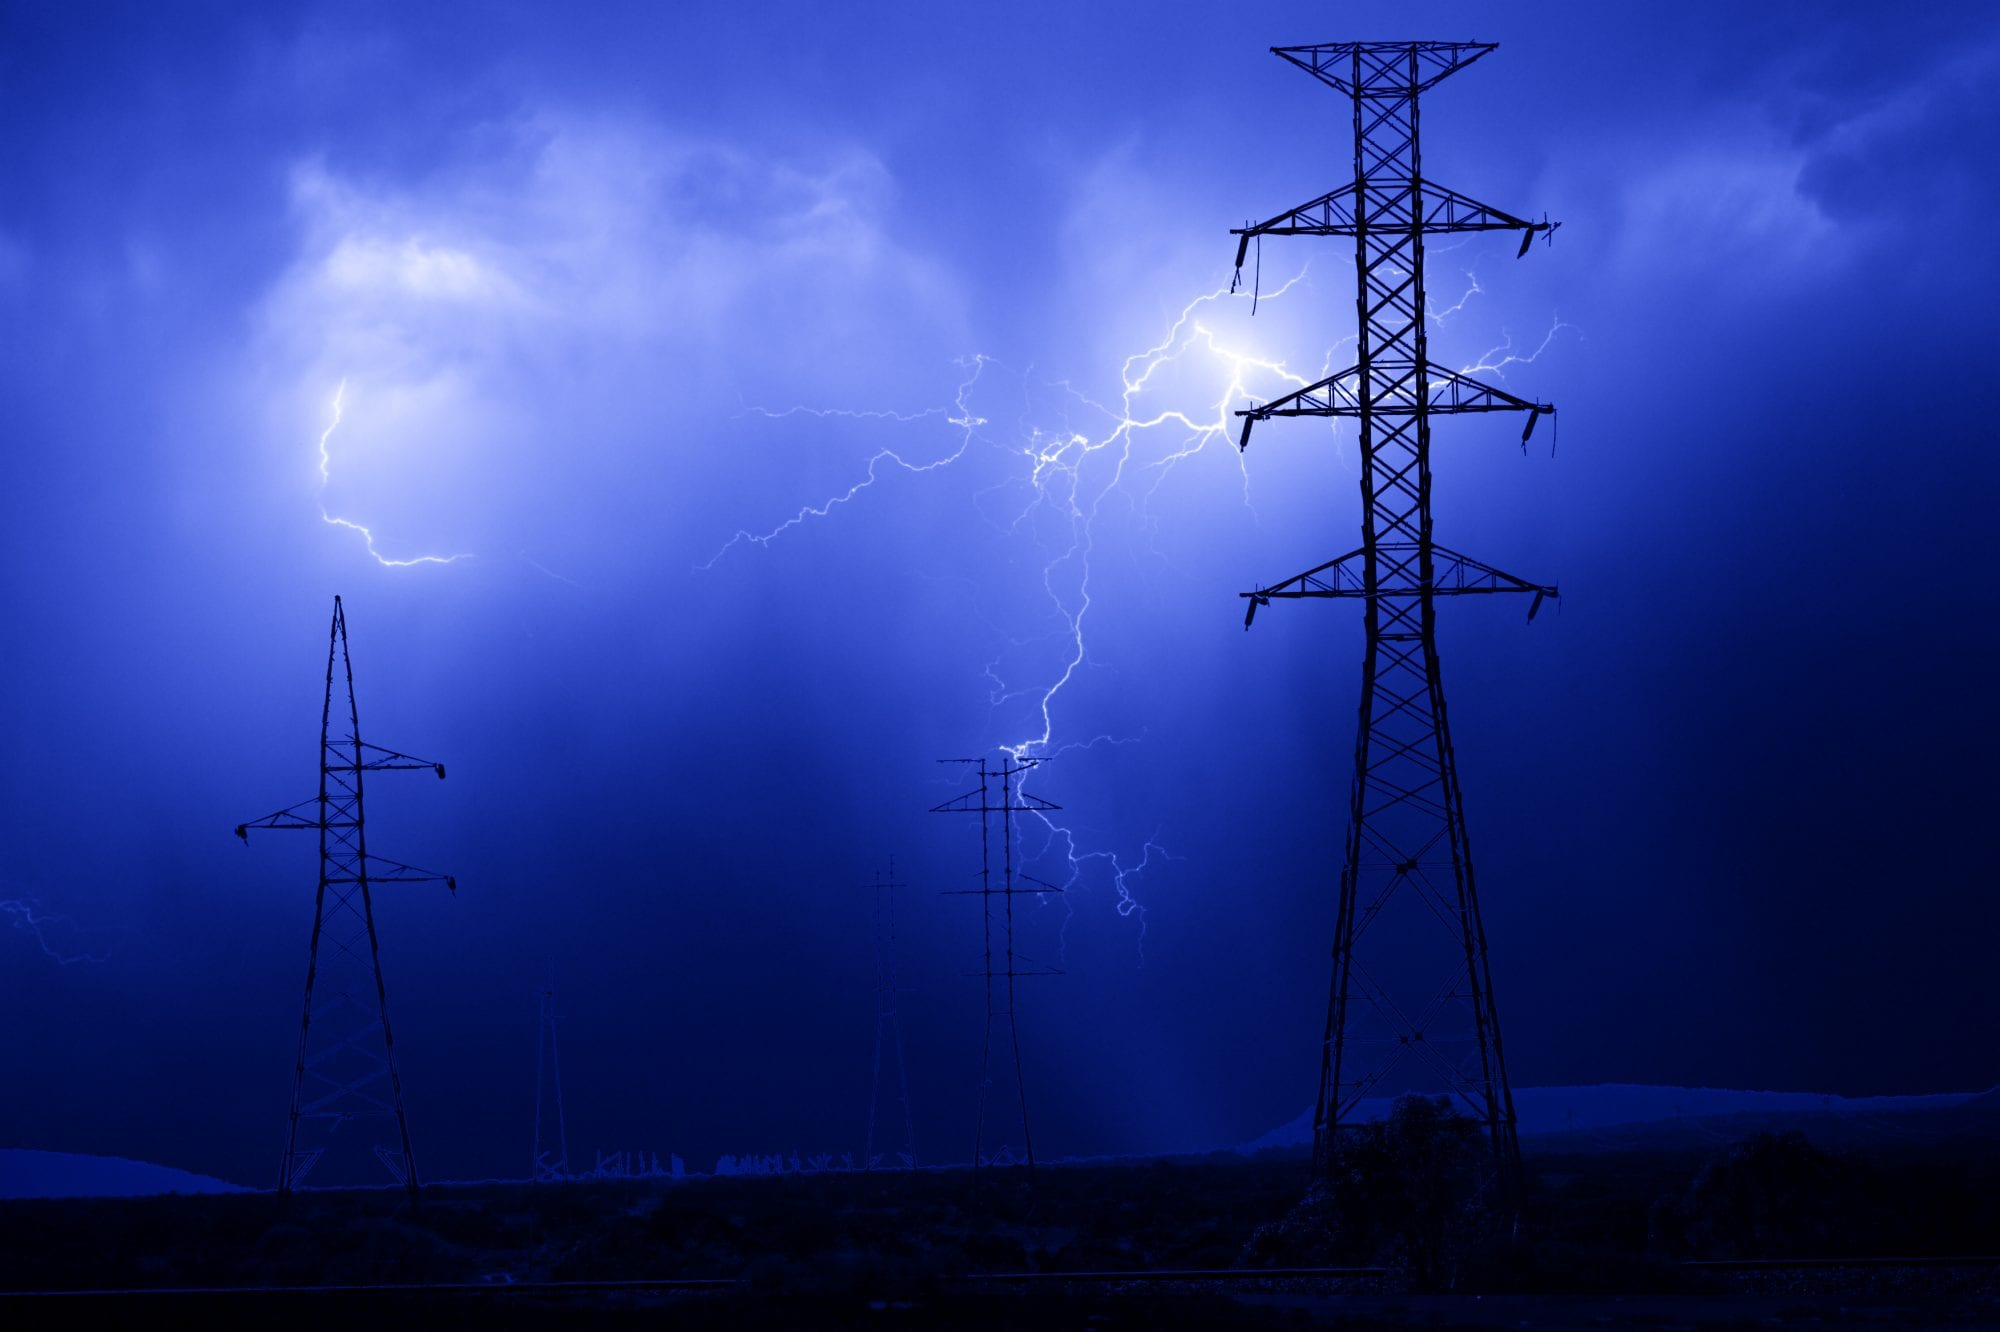 Impact of low power quality